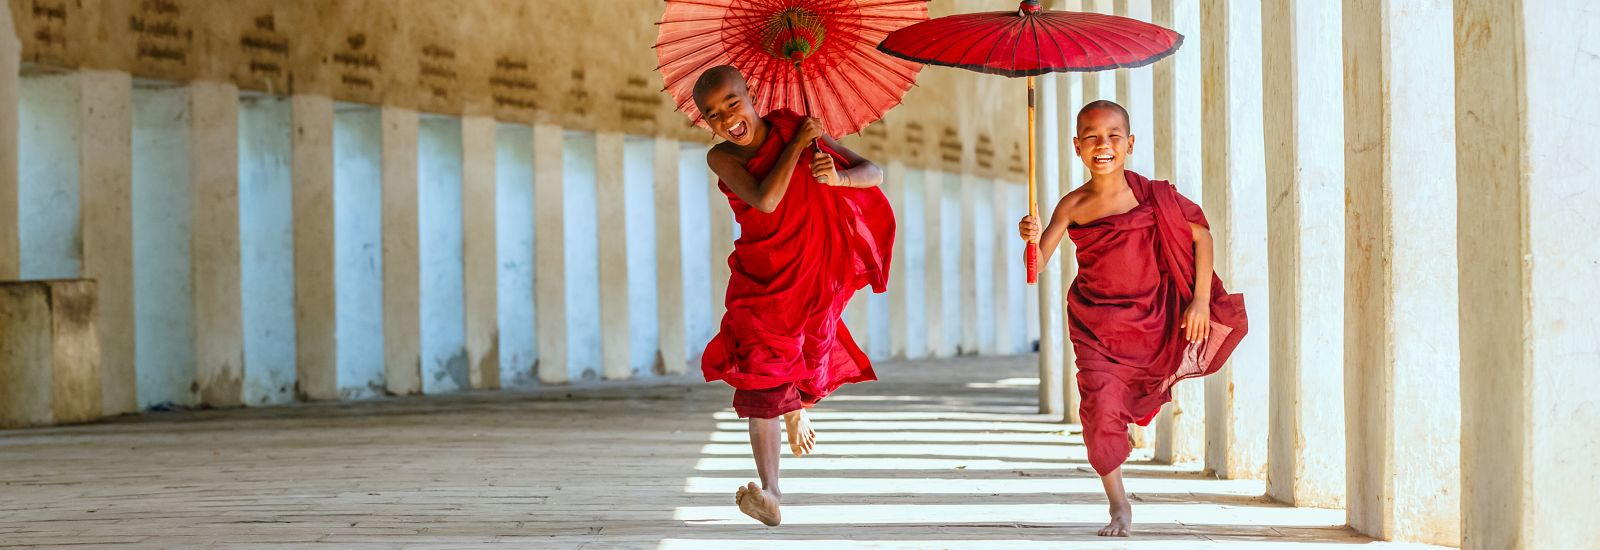 BAGAN, MYANMAR - DEC 6: Unidentified young Buddhism novices at Shwezigon temple on Dec 6, 2014 in Bagan. Buddhism is predominantly of the Theravada tradition, practised by 89% of the population.